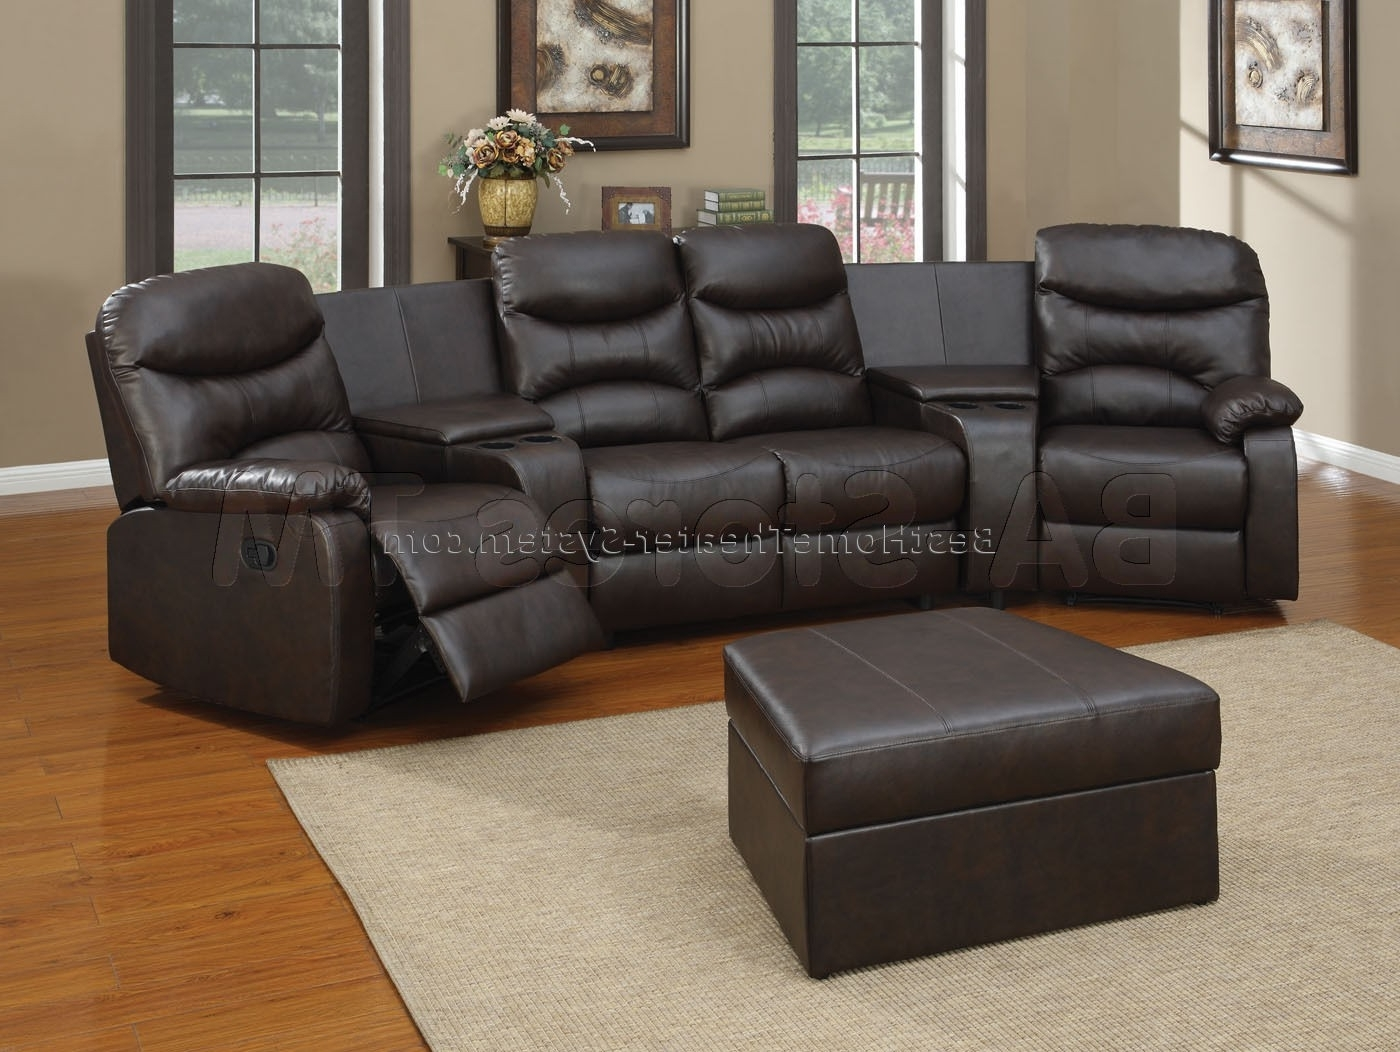 Widely Used Kanes Sectional Sofas With Awesome Sectional Sofa Theater Style – Mediasupload (View 5 of 20)